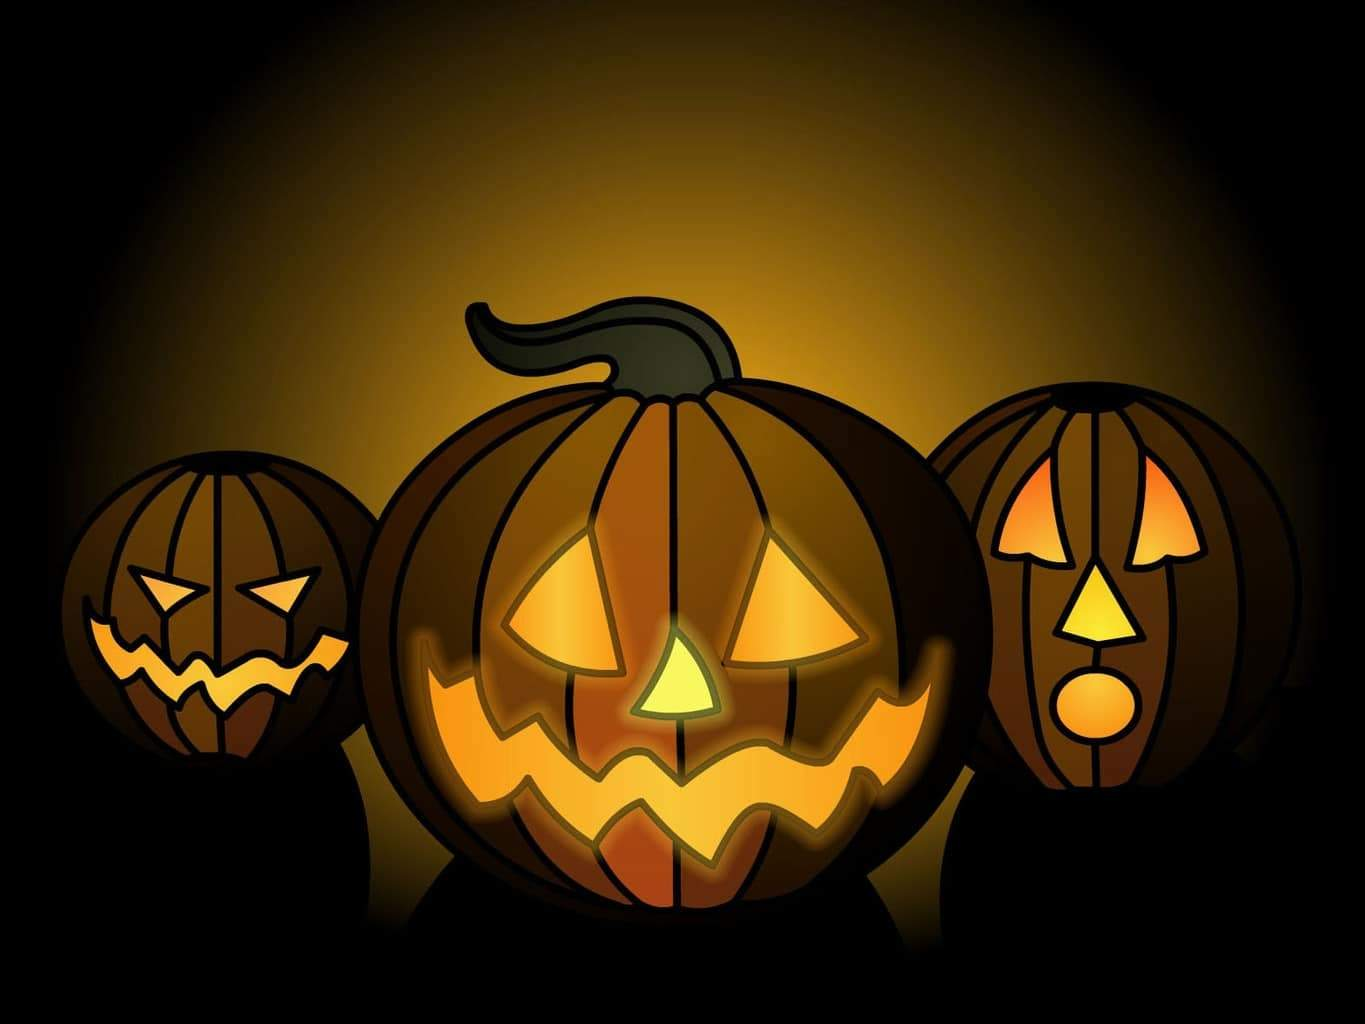 Halloween celebration is a direct confrontation between the forces of darkness and the children of God